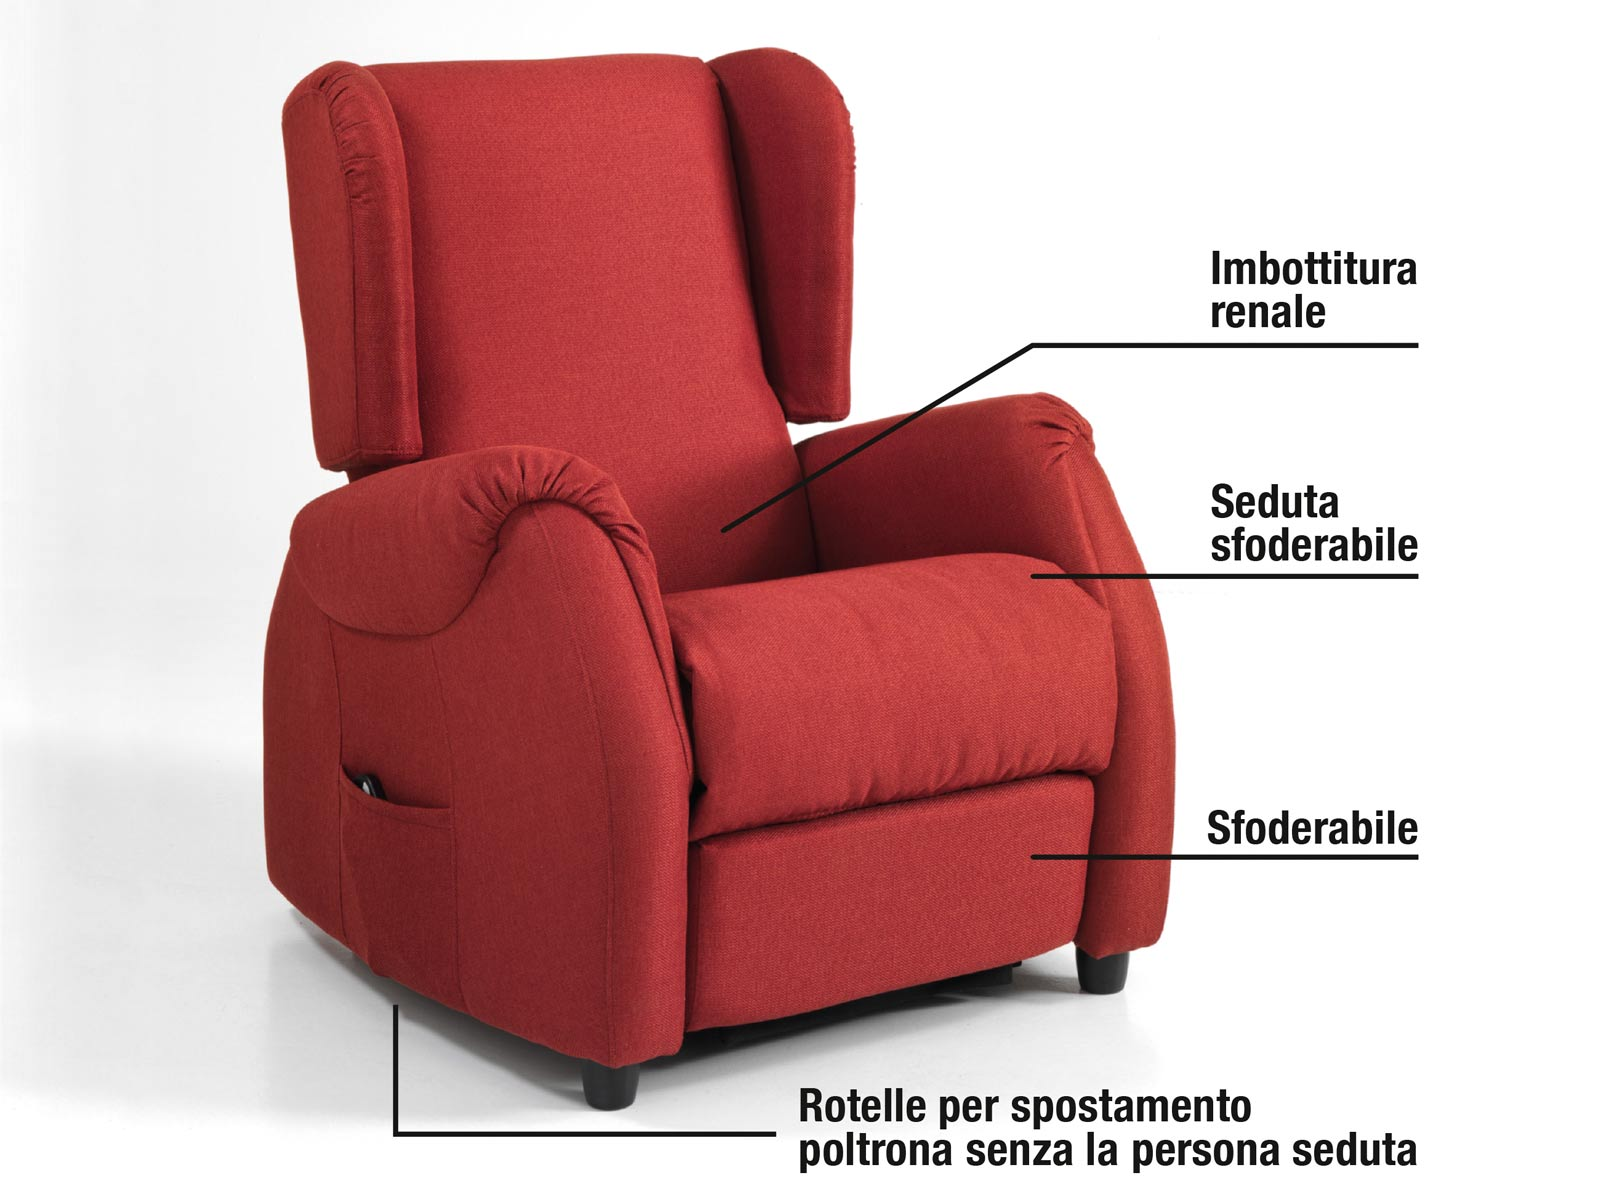 Poltrone Relax Alzapersona Per Anziani Pictures to pin on ...